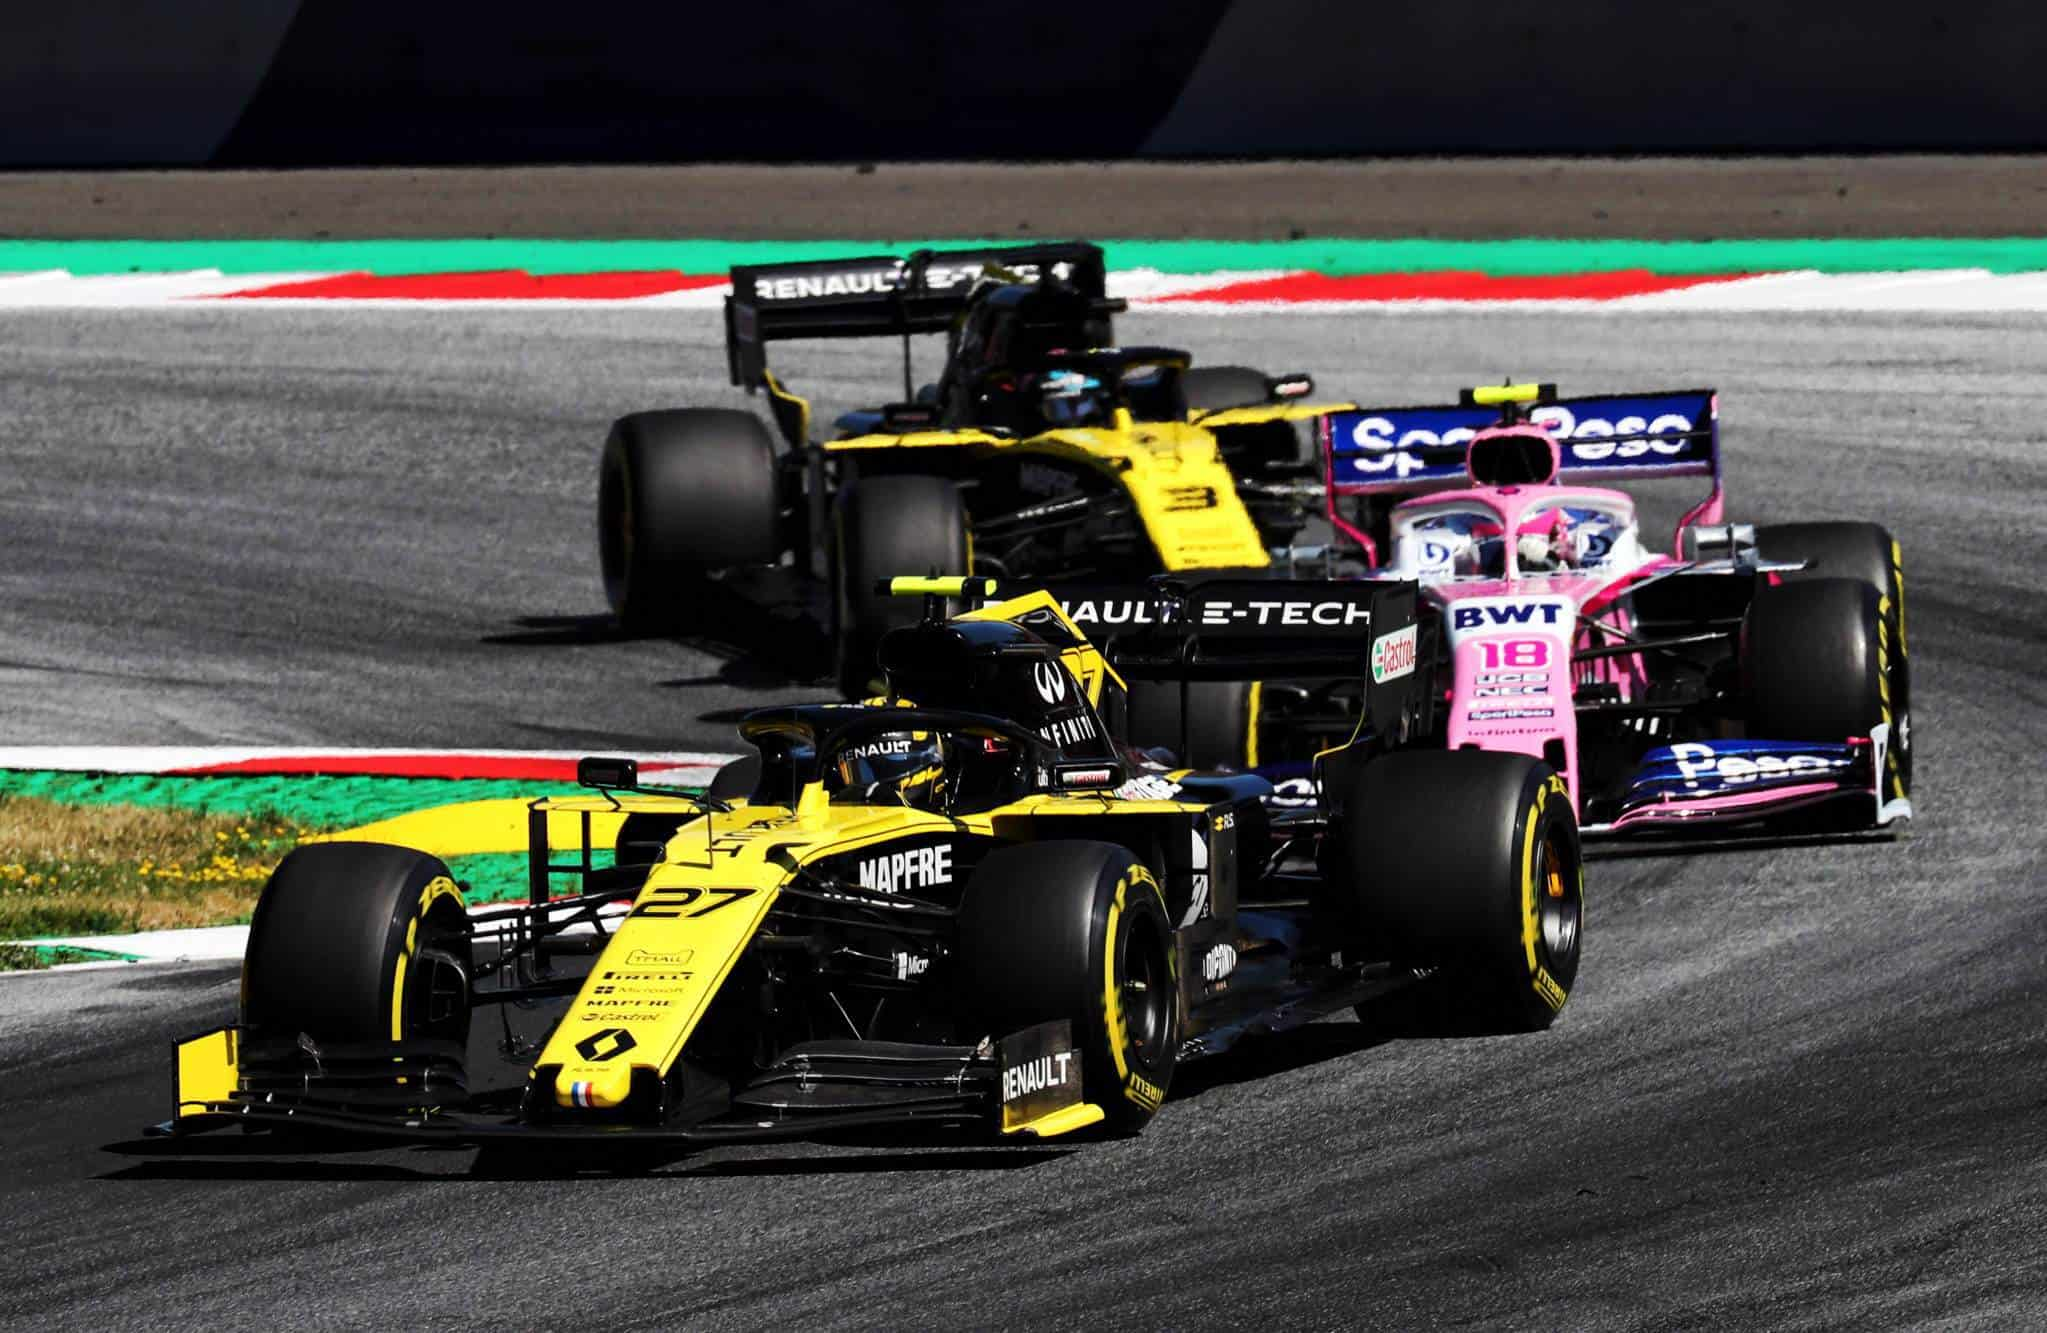 Renault drivers sandwich Stroll in Racing Point Austrian GP F1 2019 Photo Renault